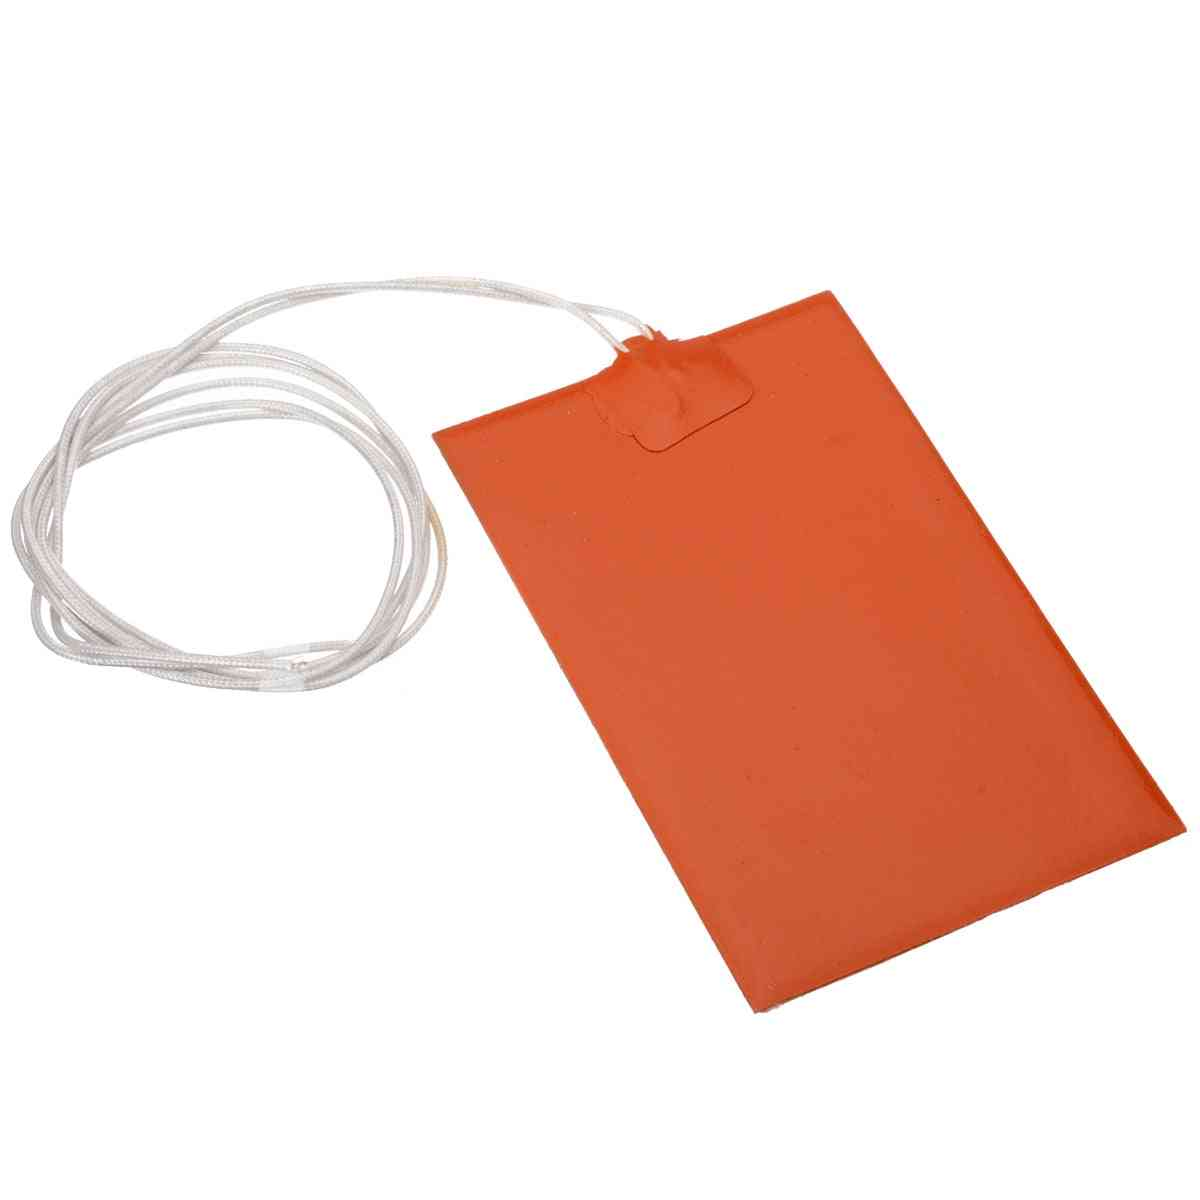 Flexible Waterproof Silicon Heater Pad Wire Engine Block Oil Pan Hydraulic Tank Heating Plate